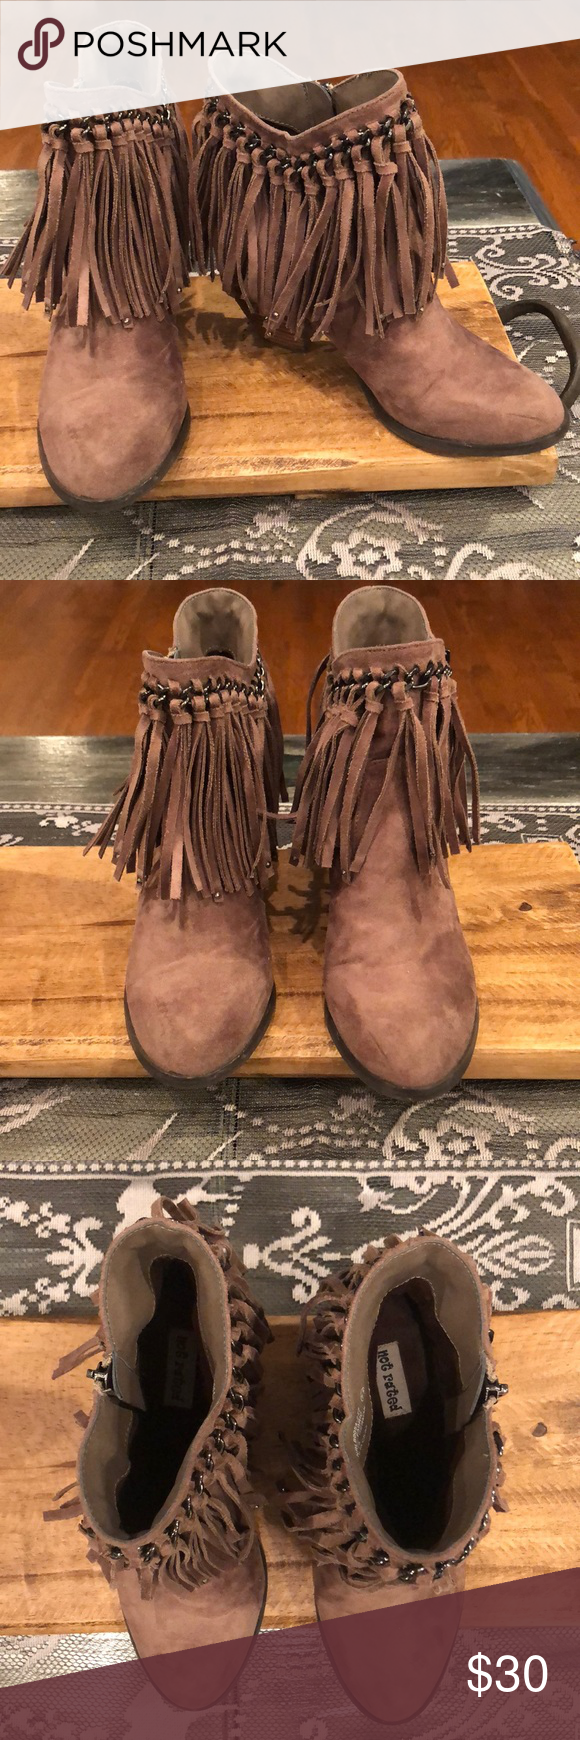 Not Rated Fringe Boot Fringe Boots Boots Not Rated Shoes